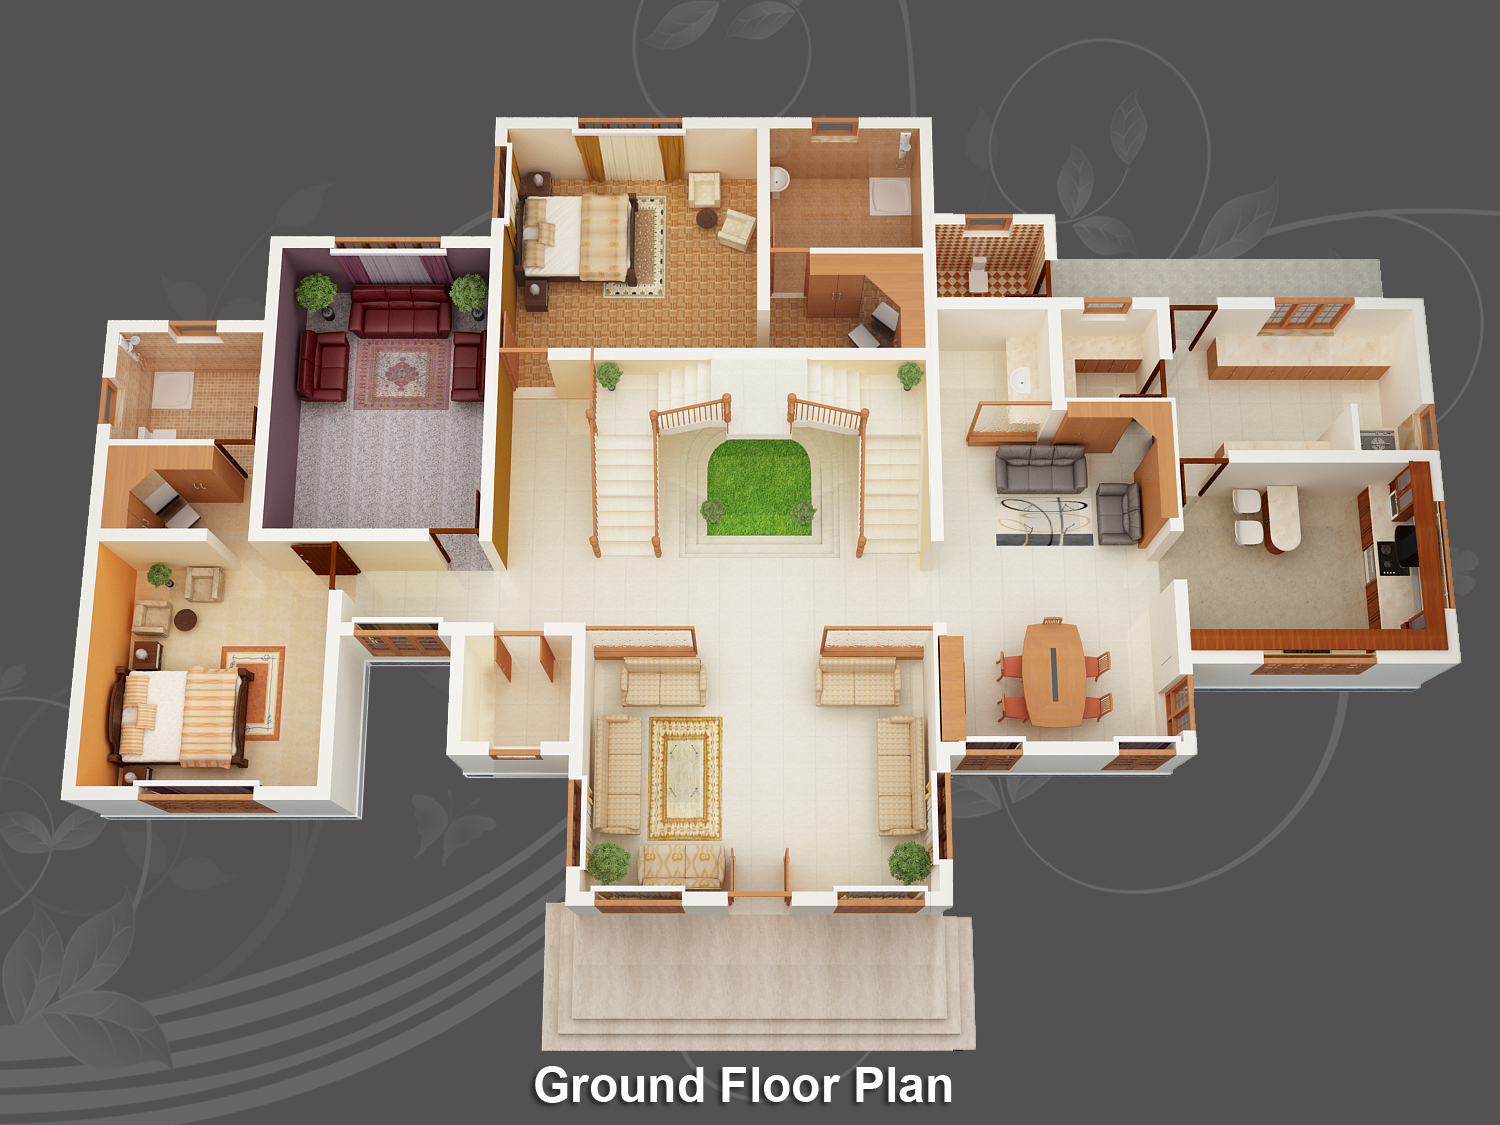 Evens construction pvt ltd 3d house plan 20 05 2011 3d home design online